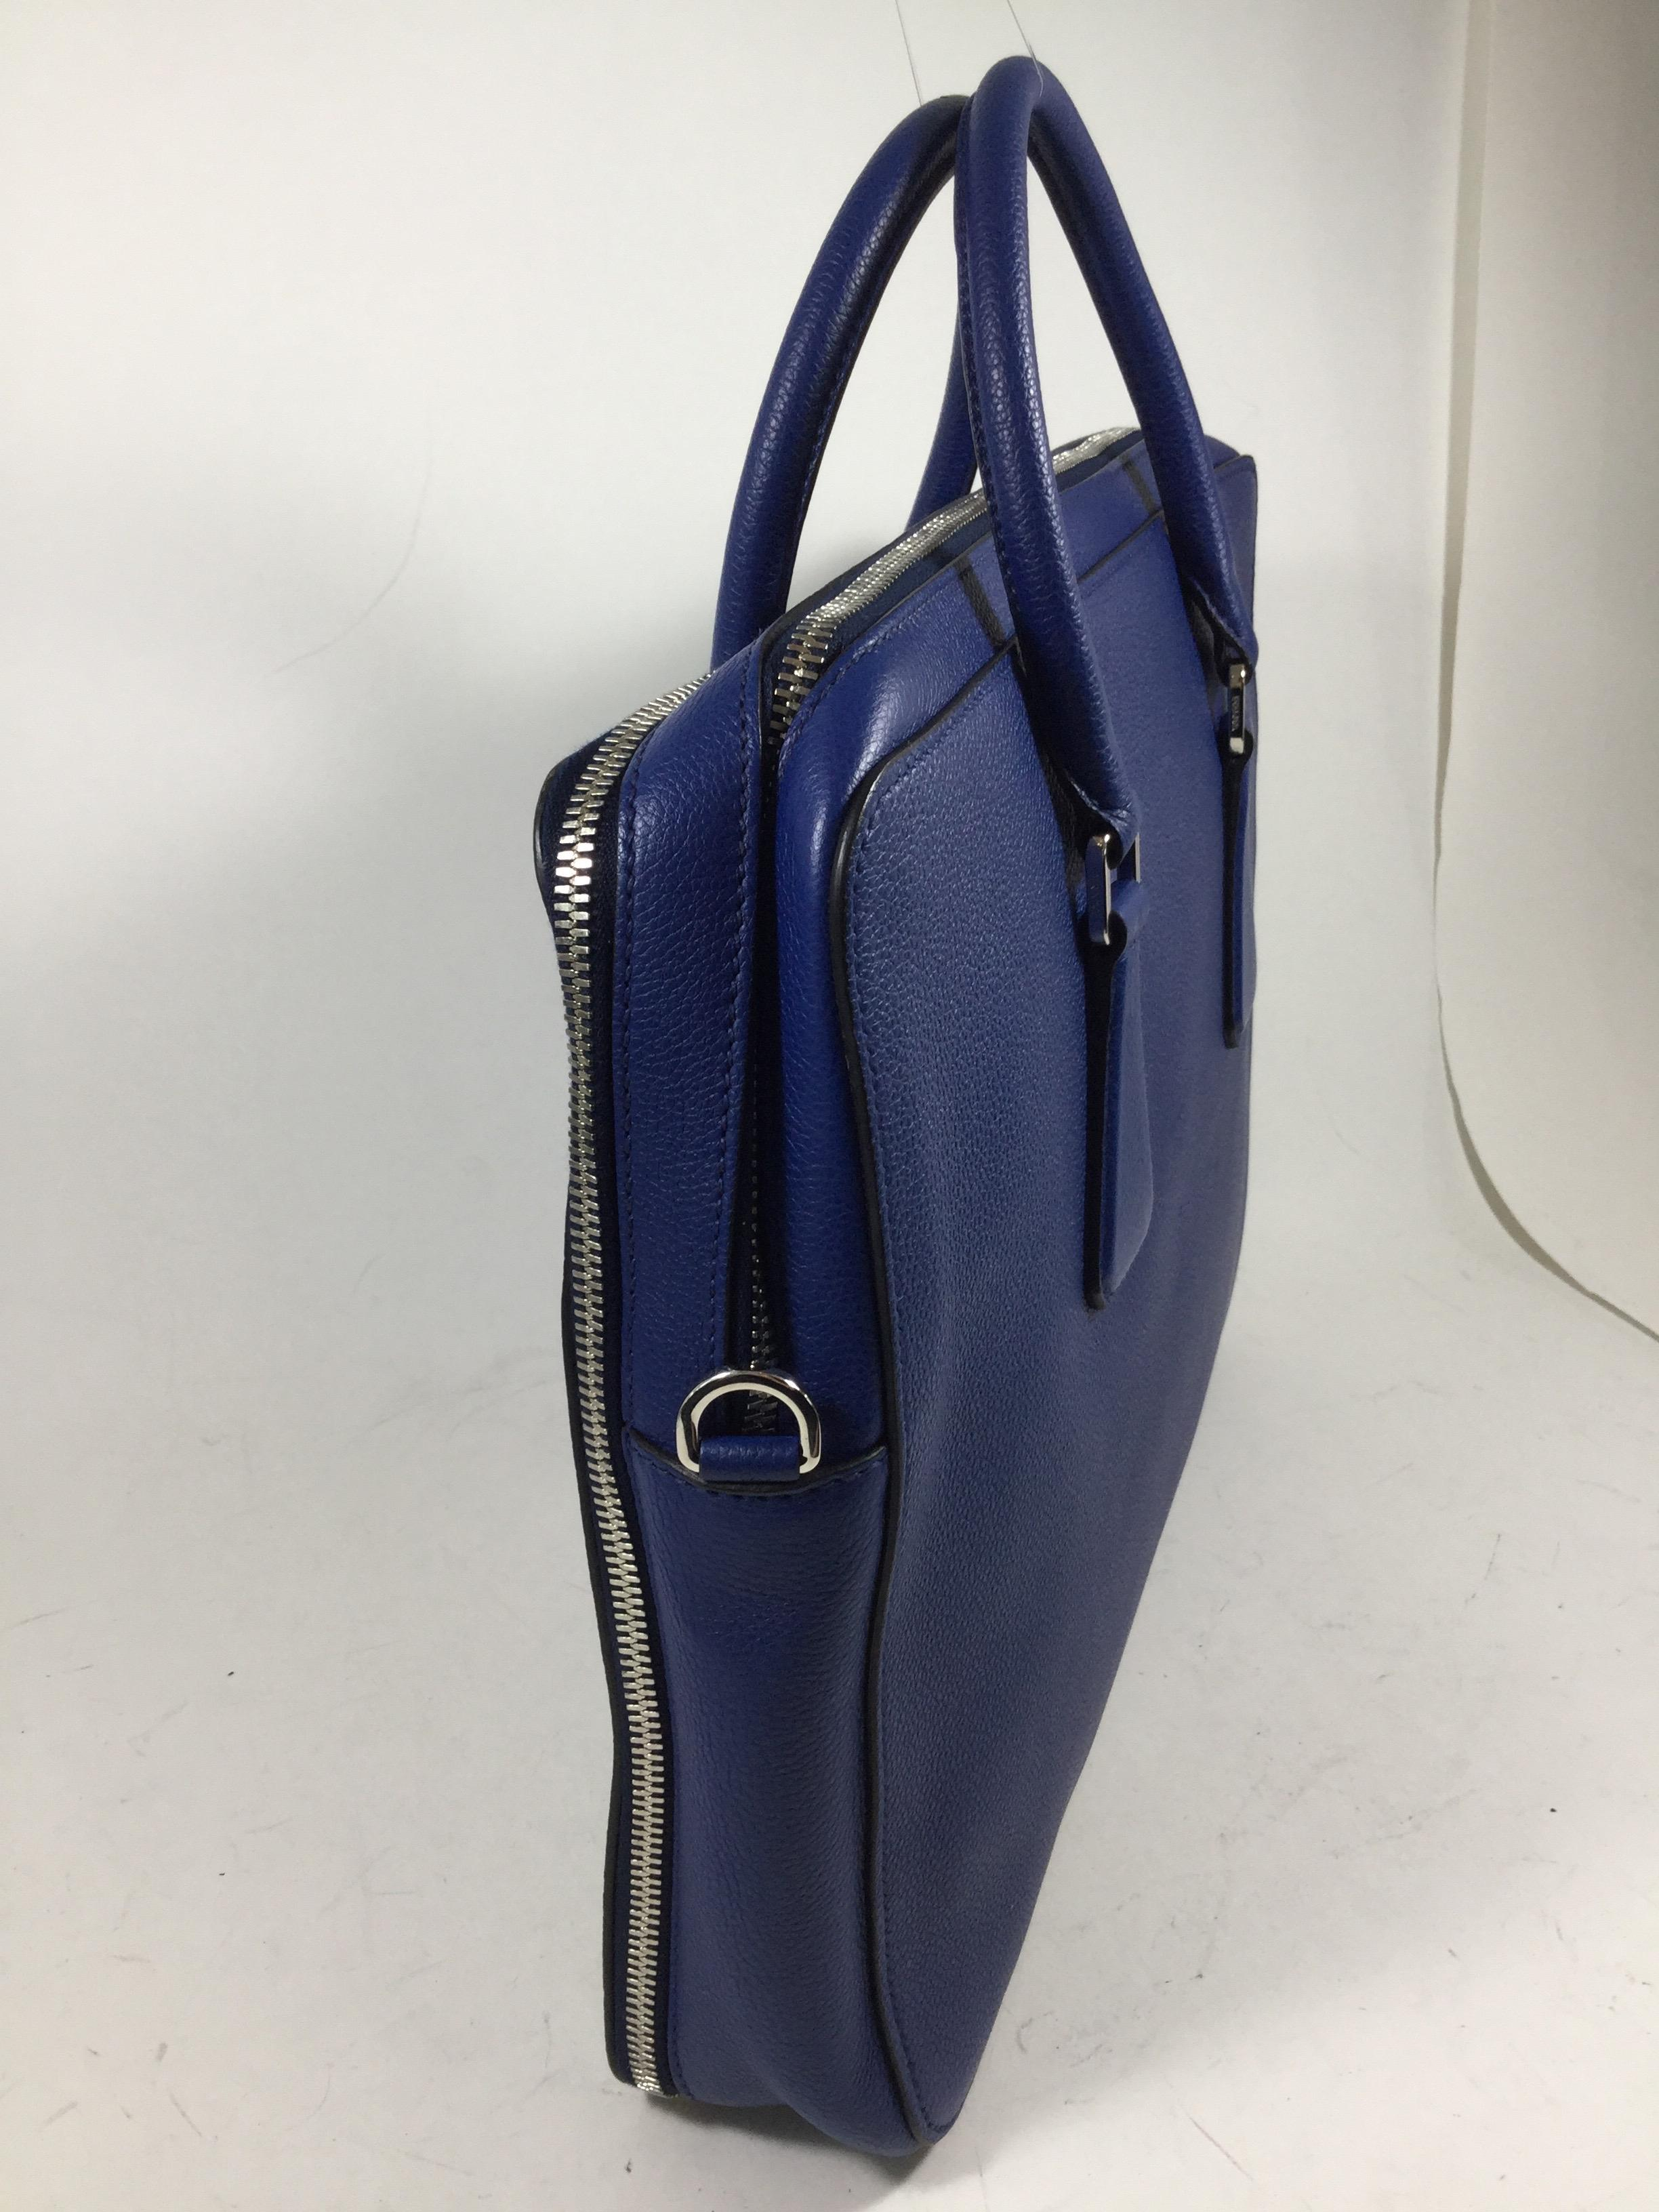 72051e88f8e9 ... coupon code for prada handbag dark blue leather laptop bag tradesy  9319c cead6